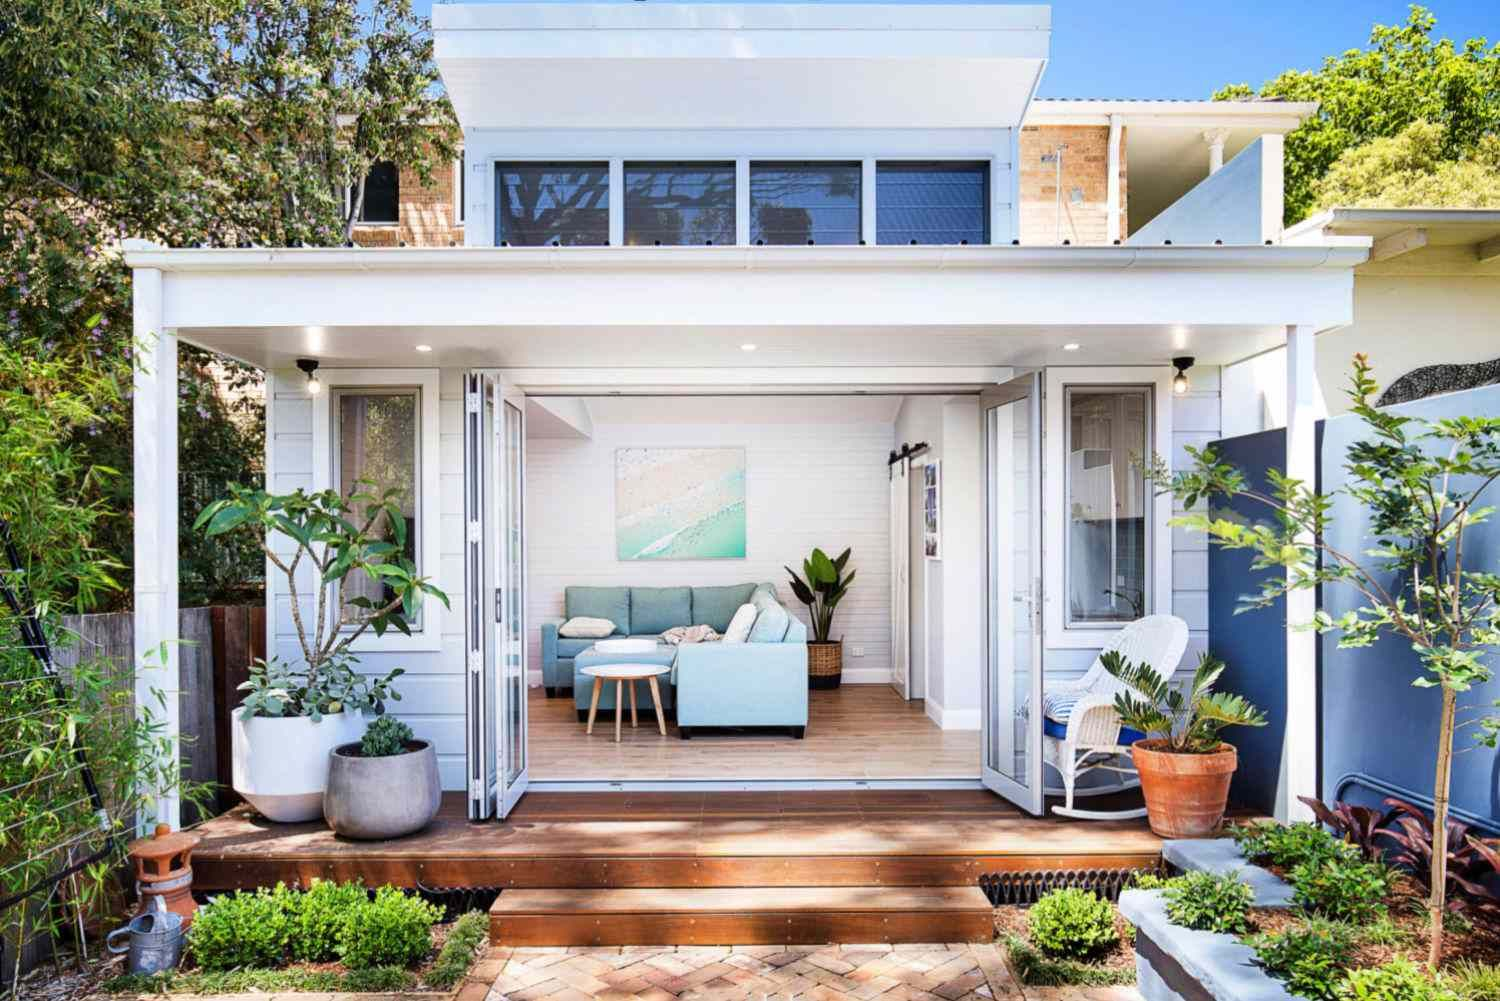 Pin On 2cb Home Office Backyard guest house ideas